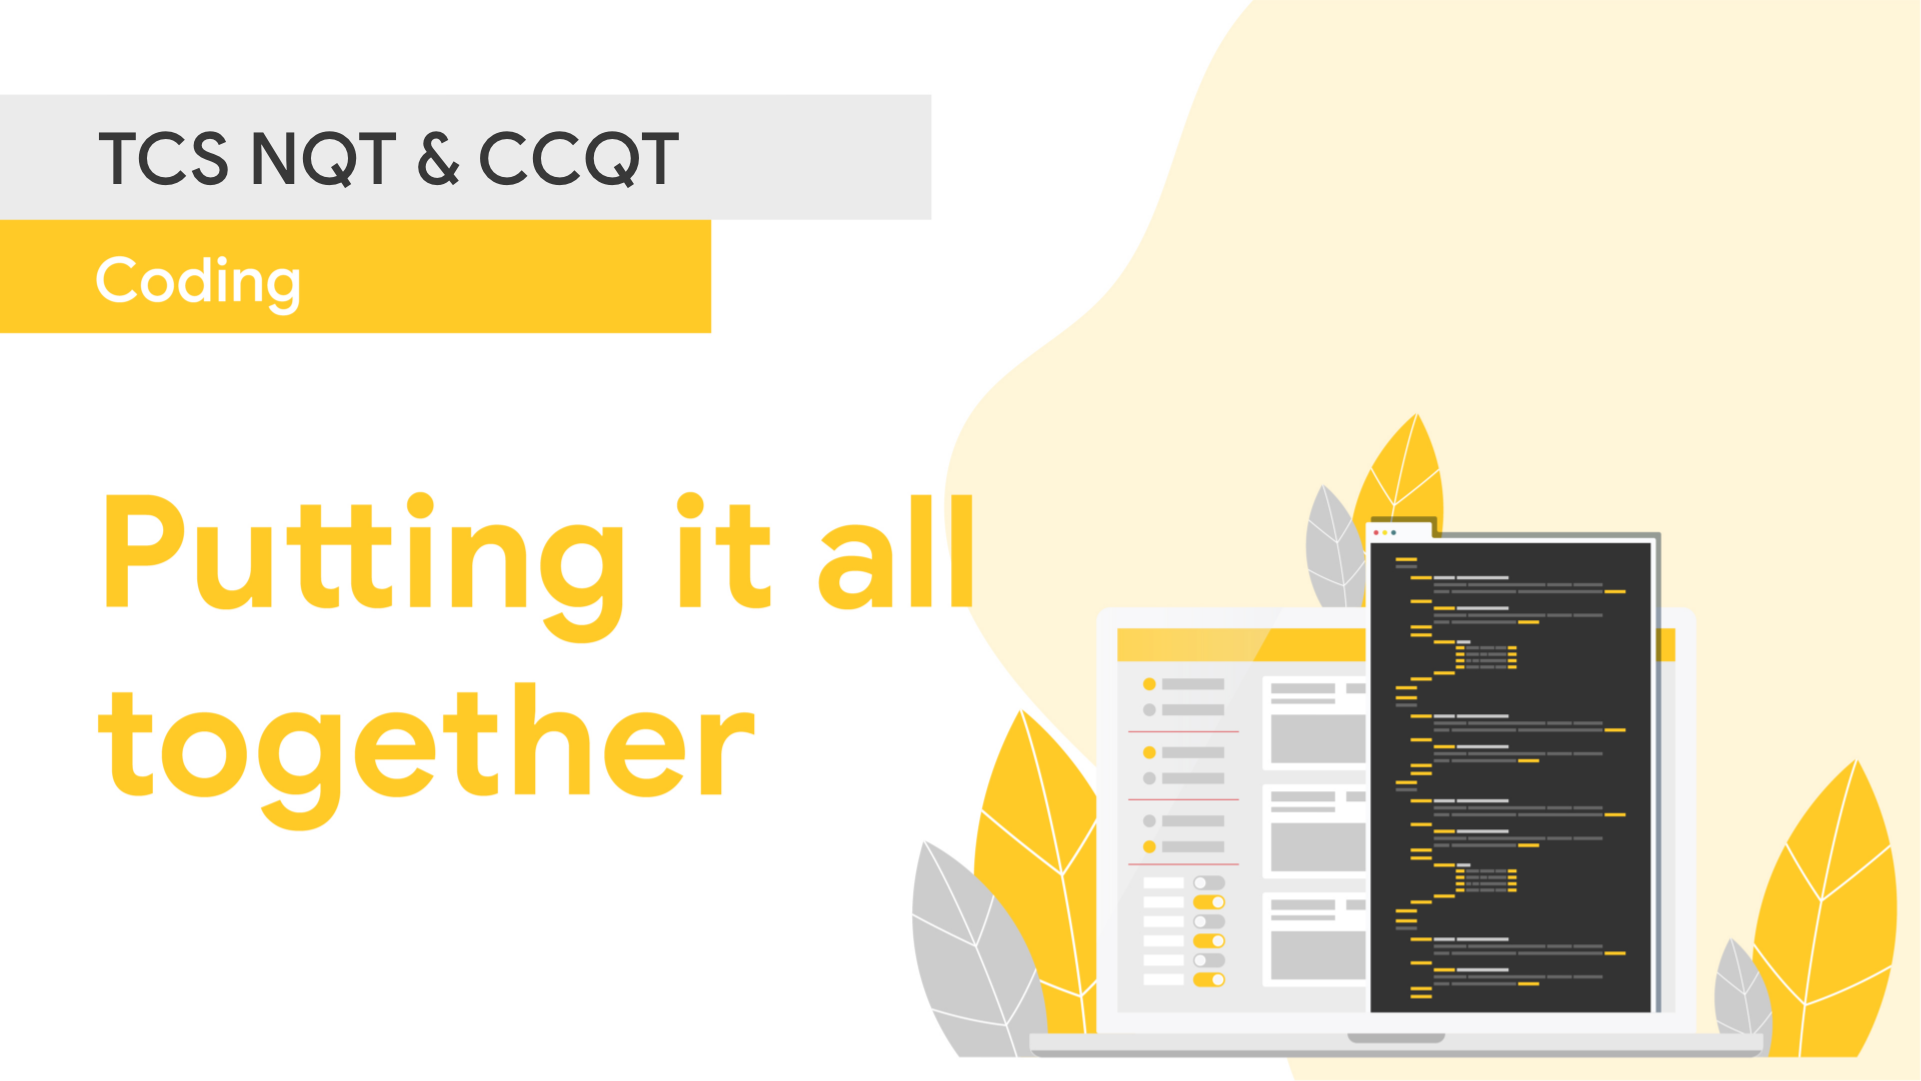 Type of Coding Questions to Expect in CCQT & TCS NQT 2020